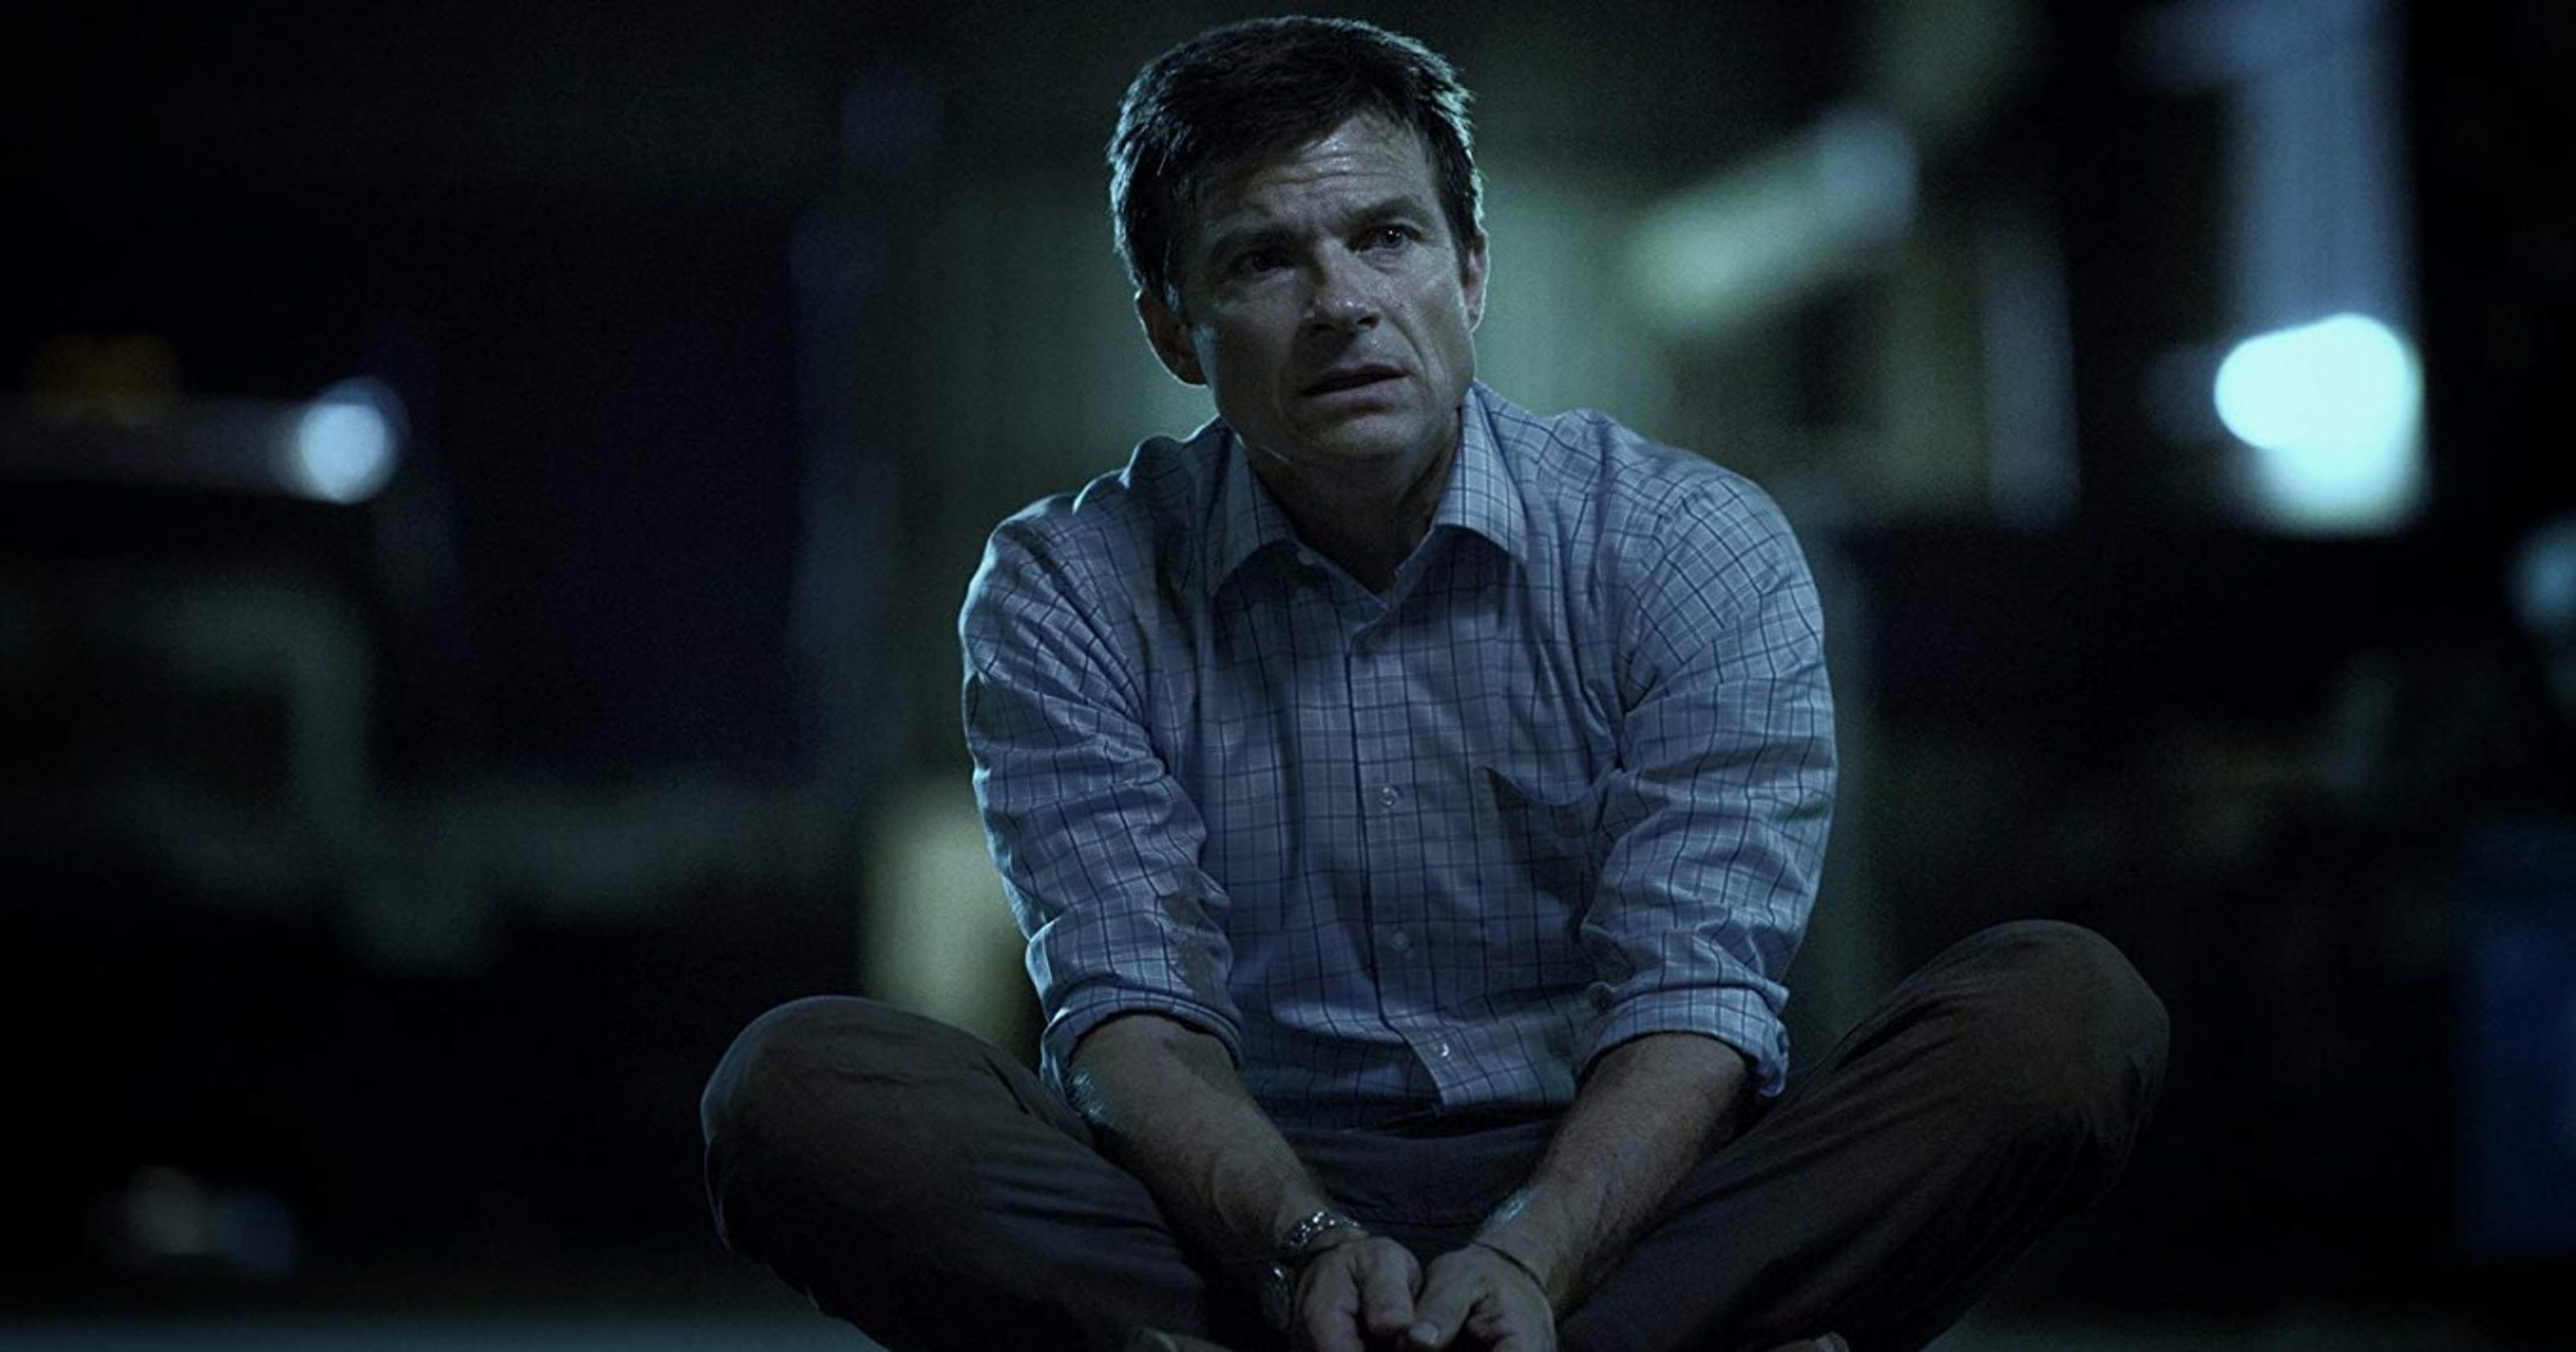 Ozark' gets political in Season 2  How closely does it hew to life?